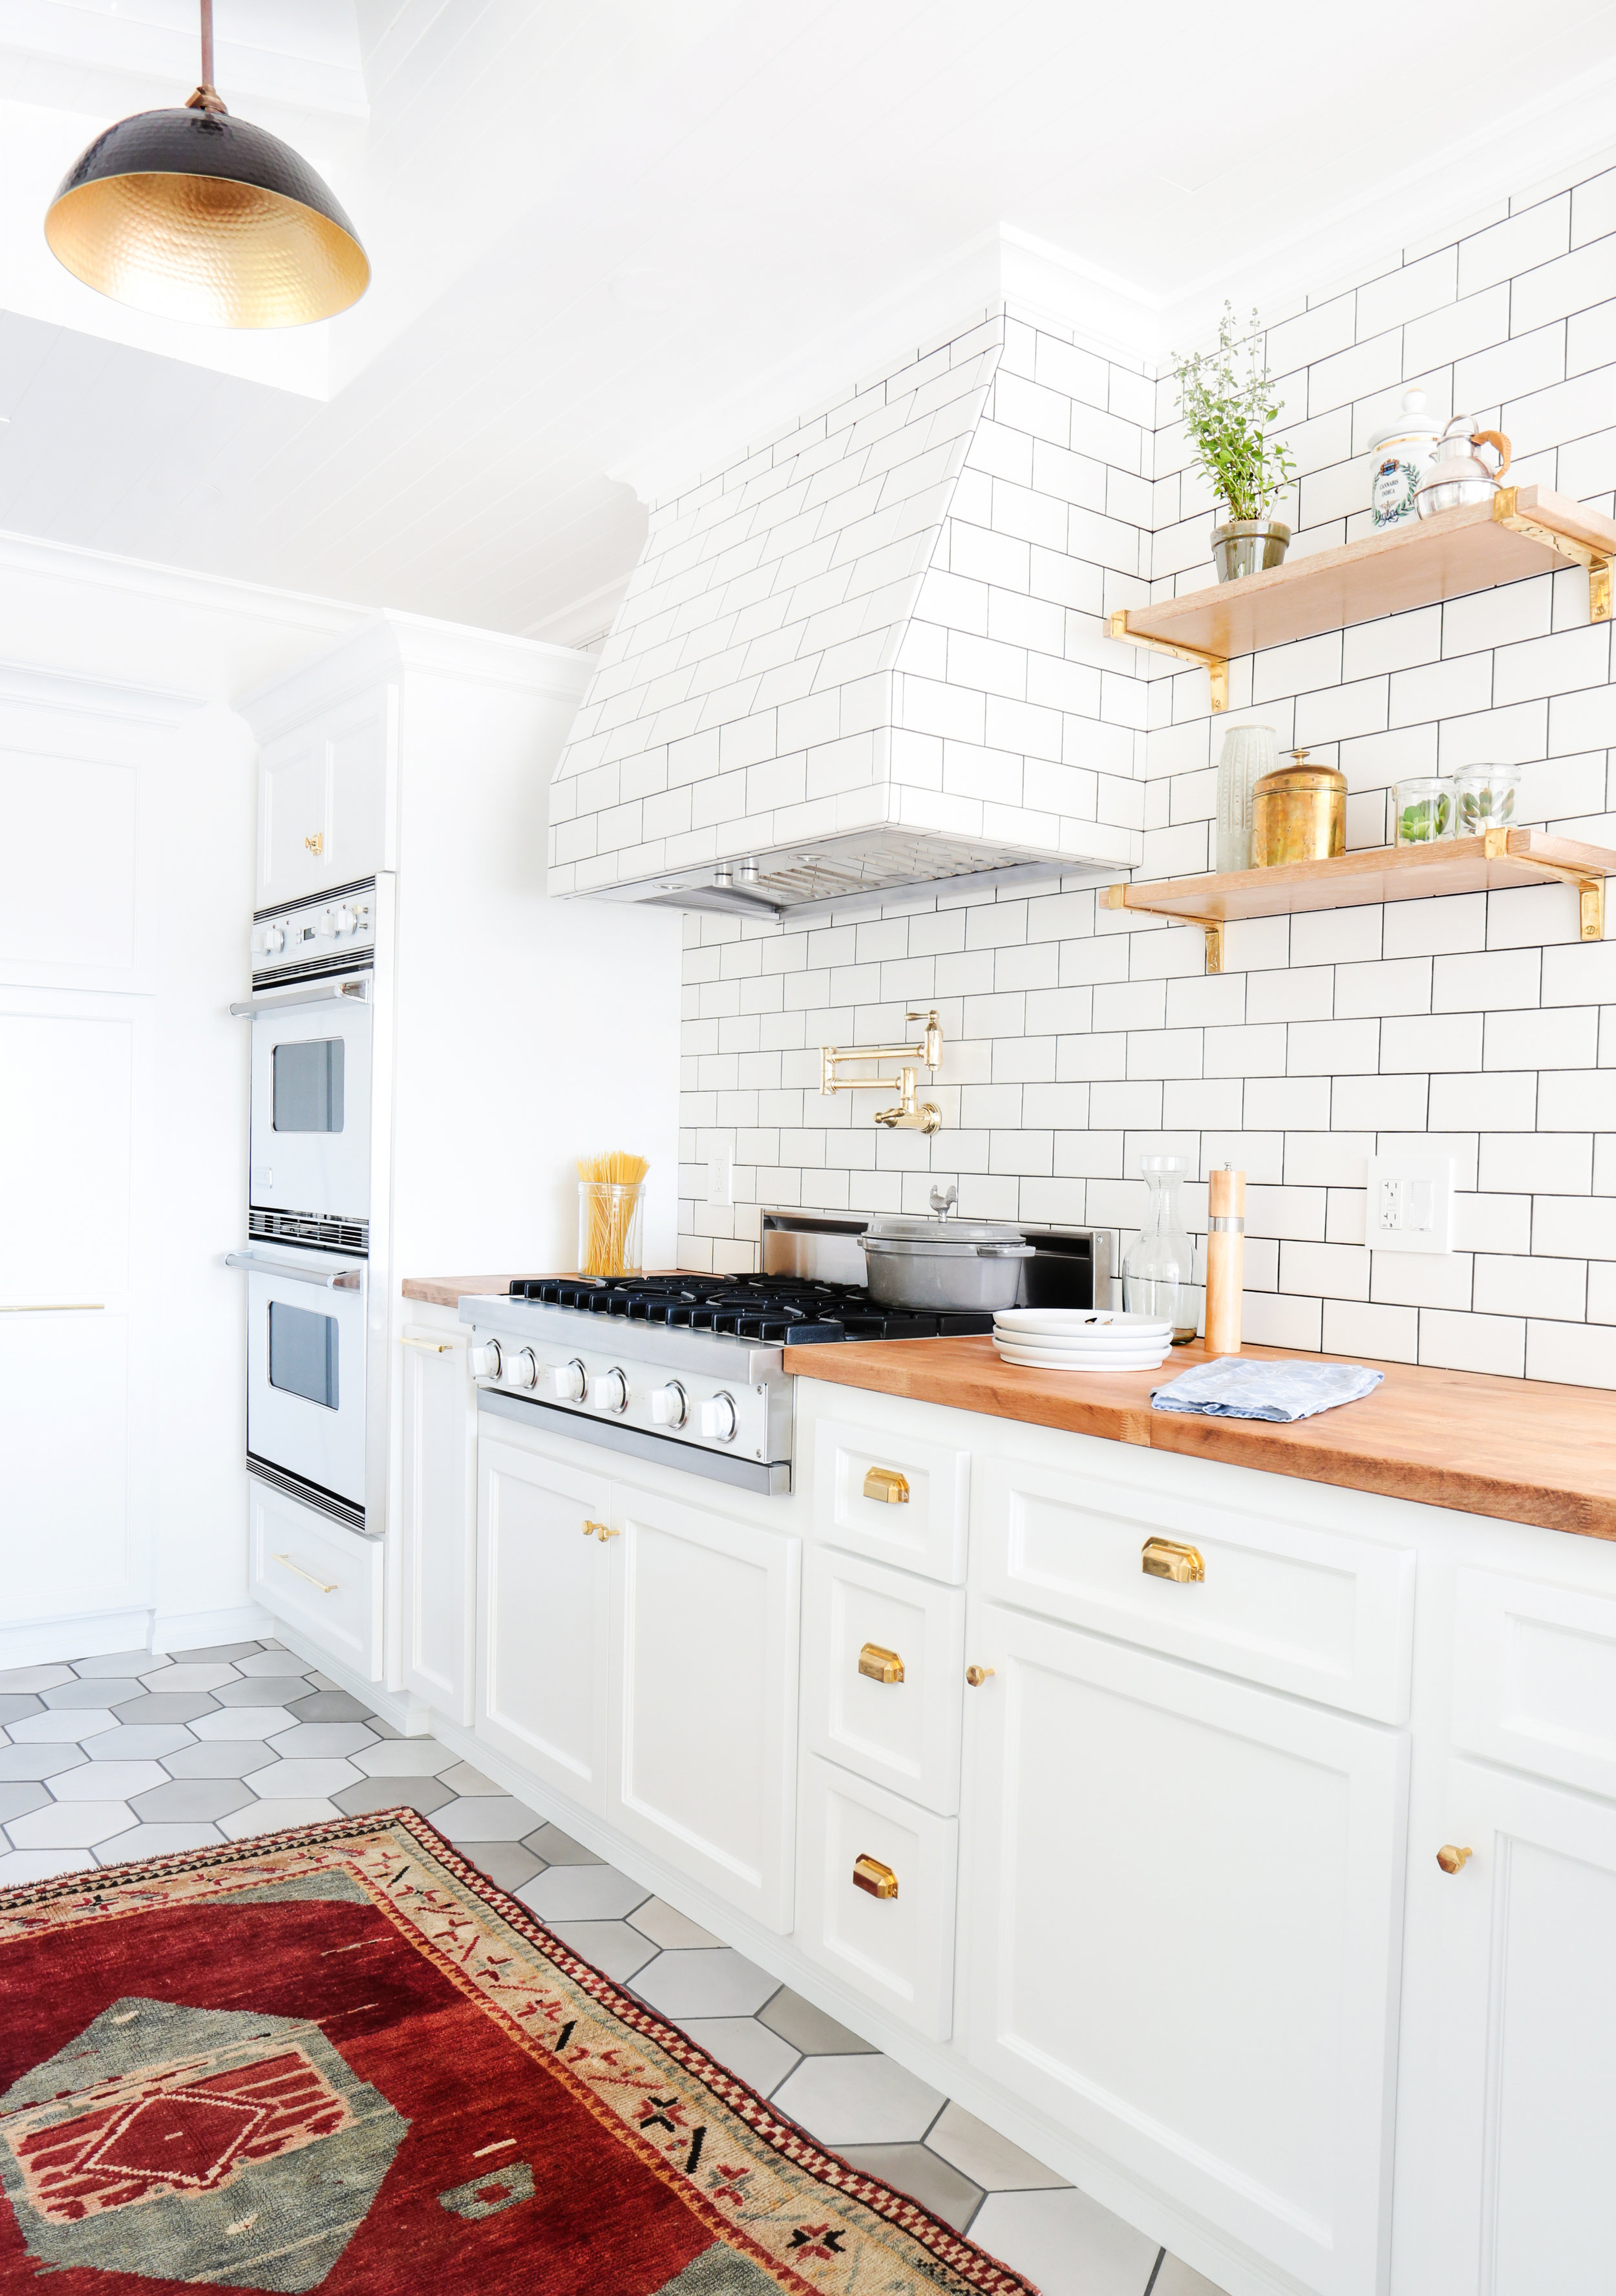 50 White Kitchen Cabinets To Brighten Up Your Cooking Space - Kitchen Cabinet Door Ideas - From sleek to country chic, we've got every style covered.BY KARA LADDBohemian ChicAccessorize with striking gold hardware for a glam touch.Design by Stefani Stein Inc.